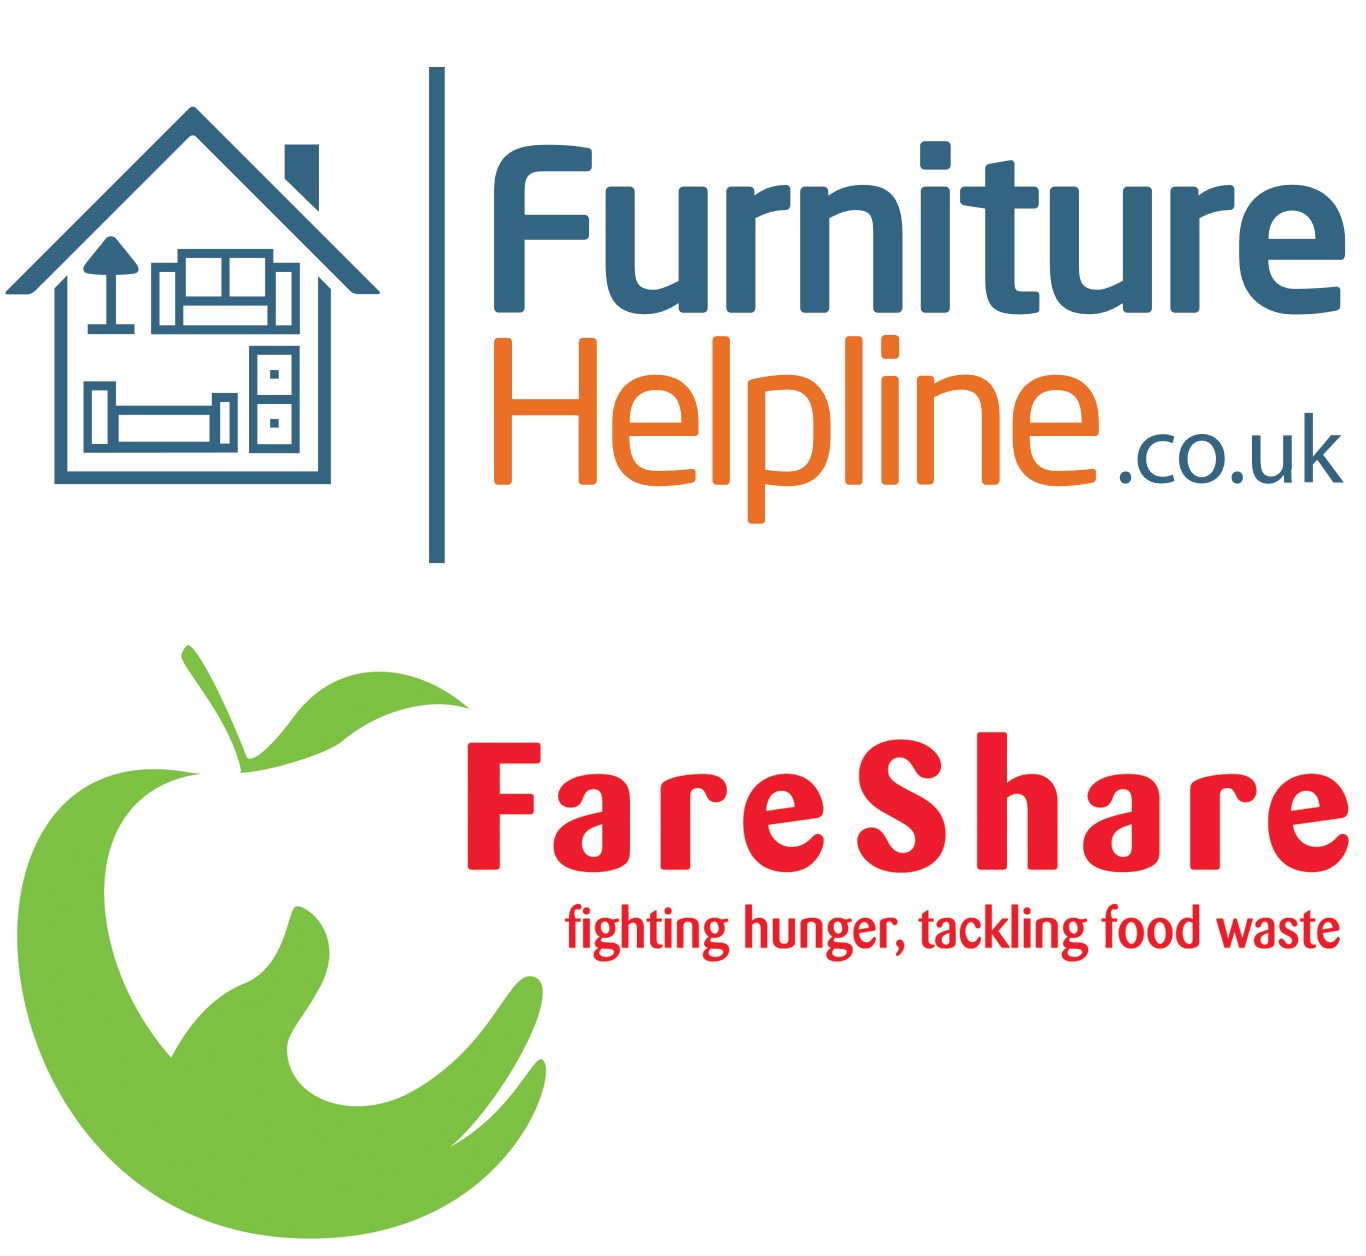 Furniture helpline and fareshare furnihelp fareshareuk for Furniture helpline